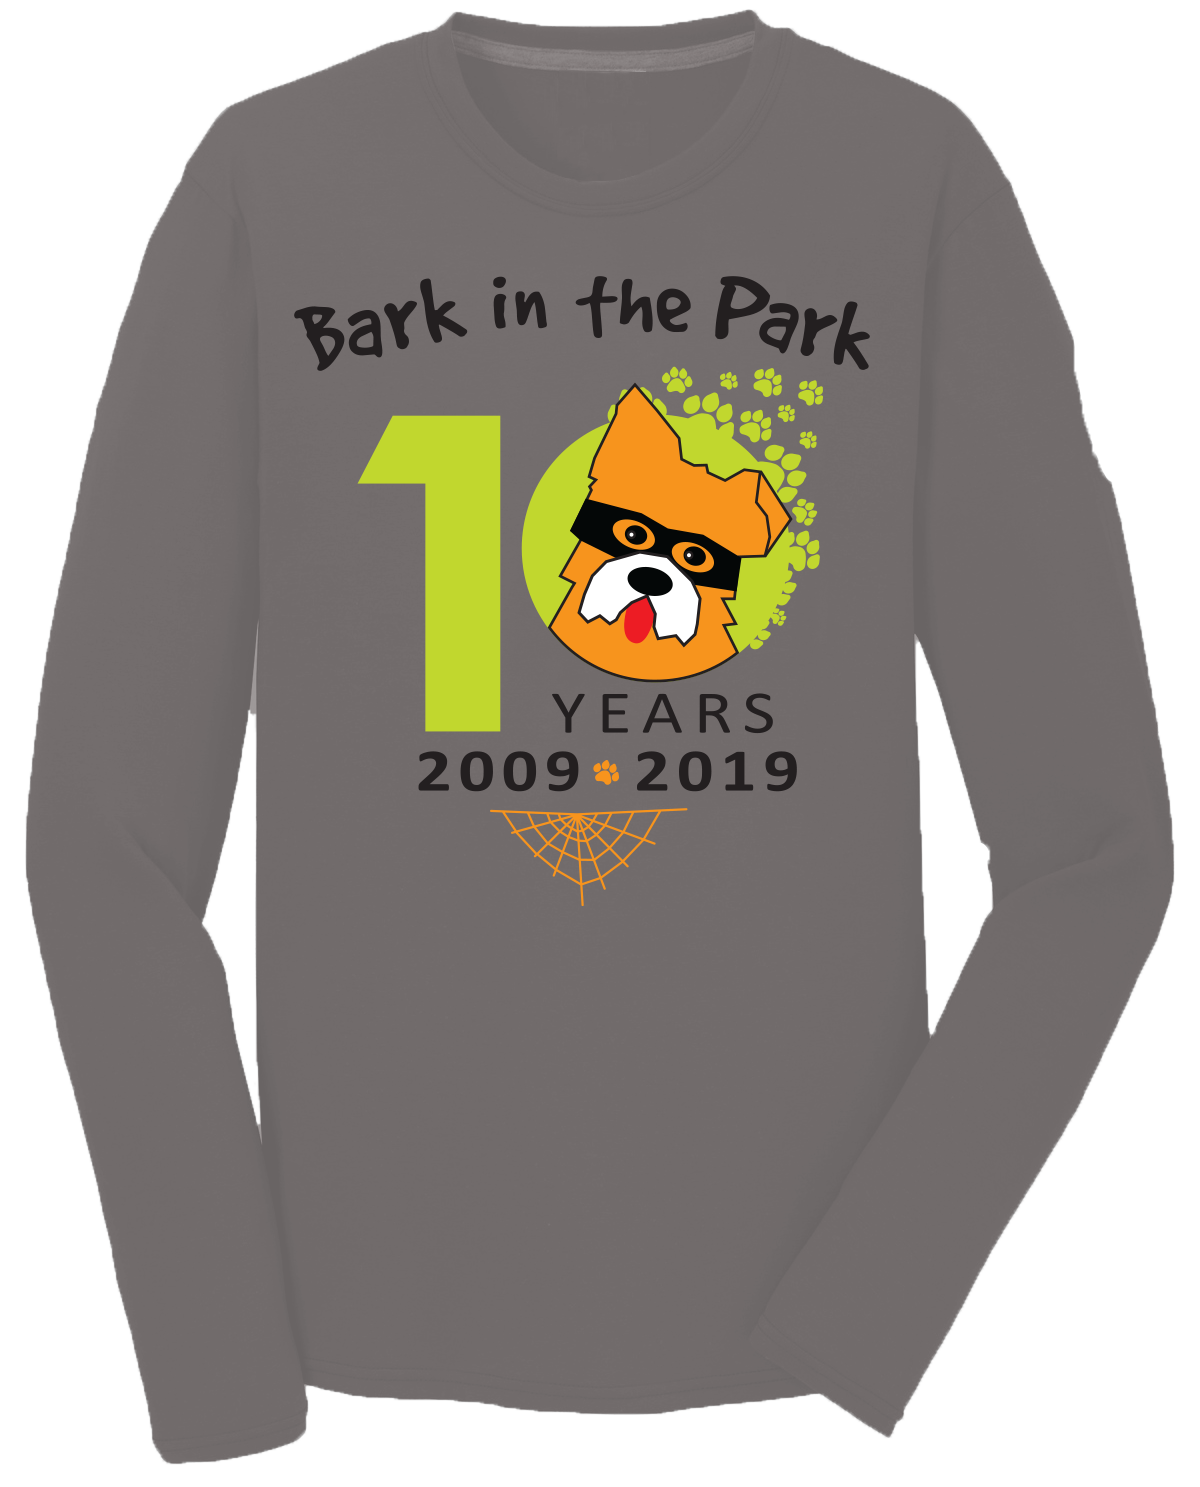 T shirt Mockup front with date